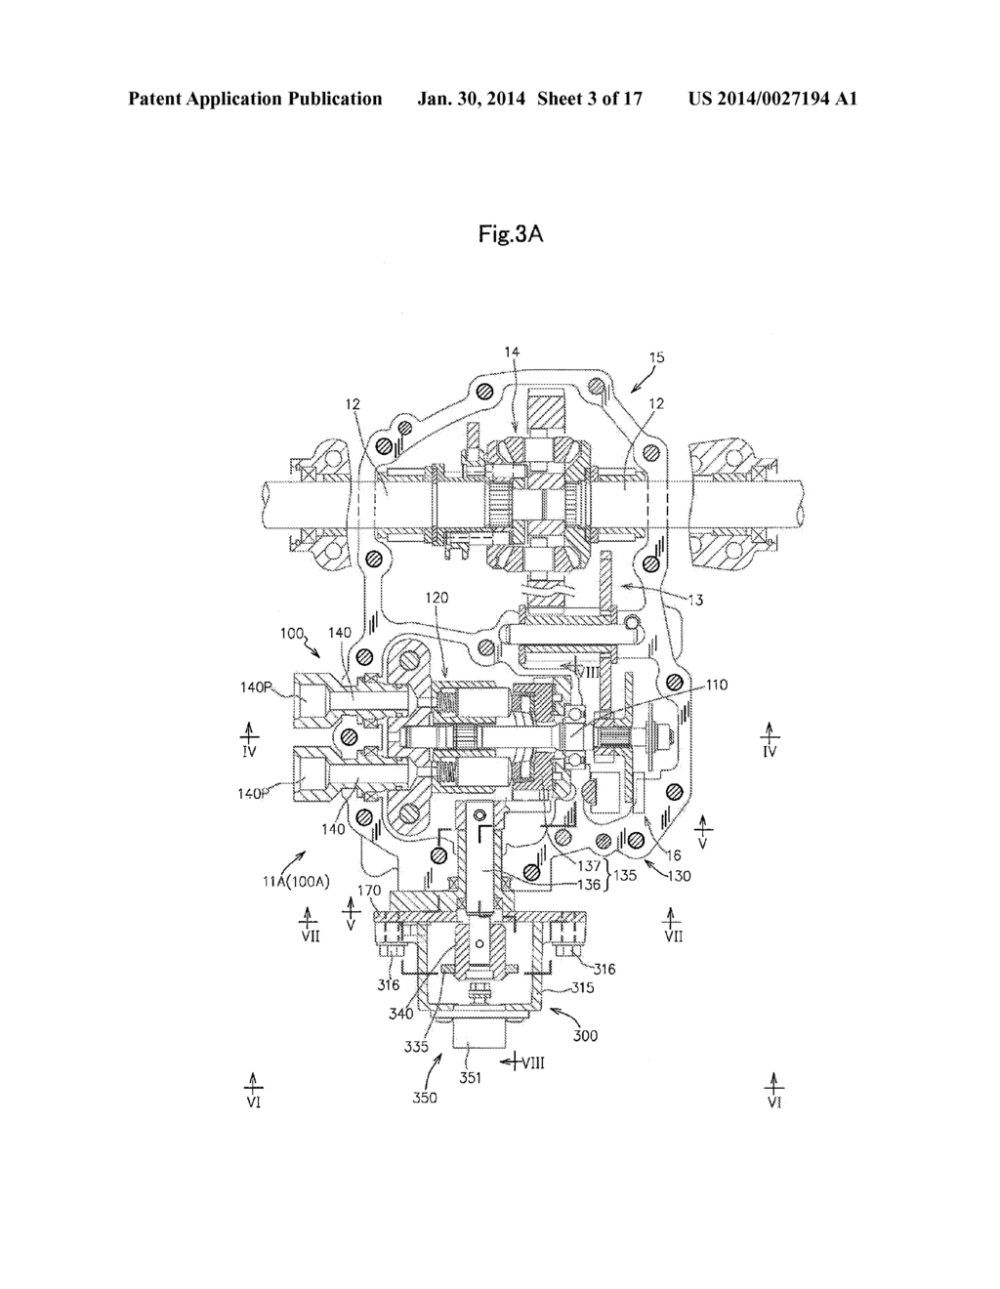 medium resolution of hydraulic motor unit and hydraulic four wheel drive working vehicle diagram schematic and image 04